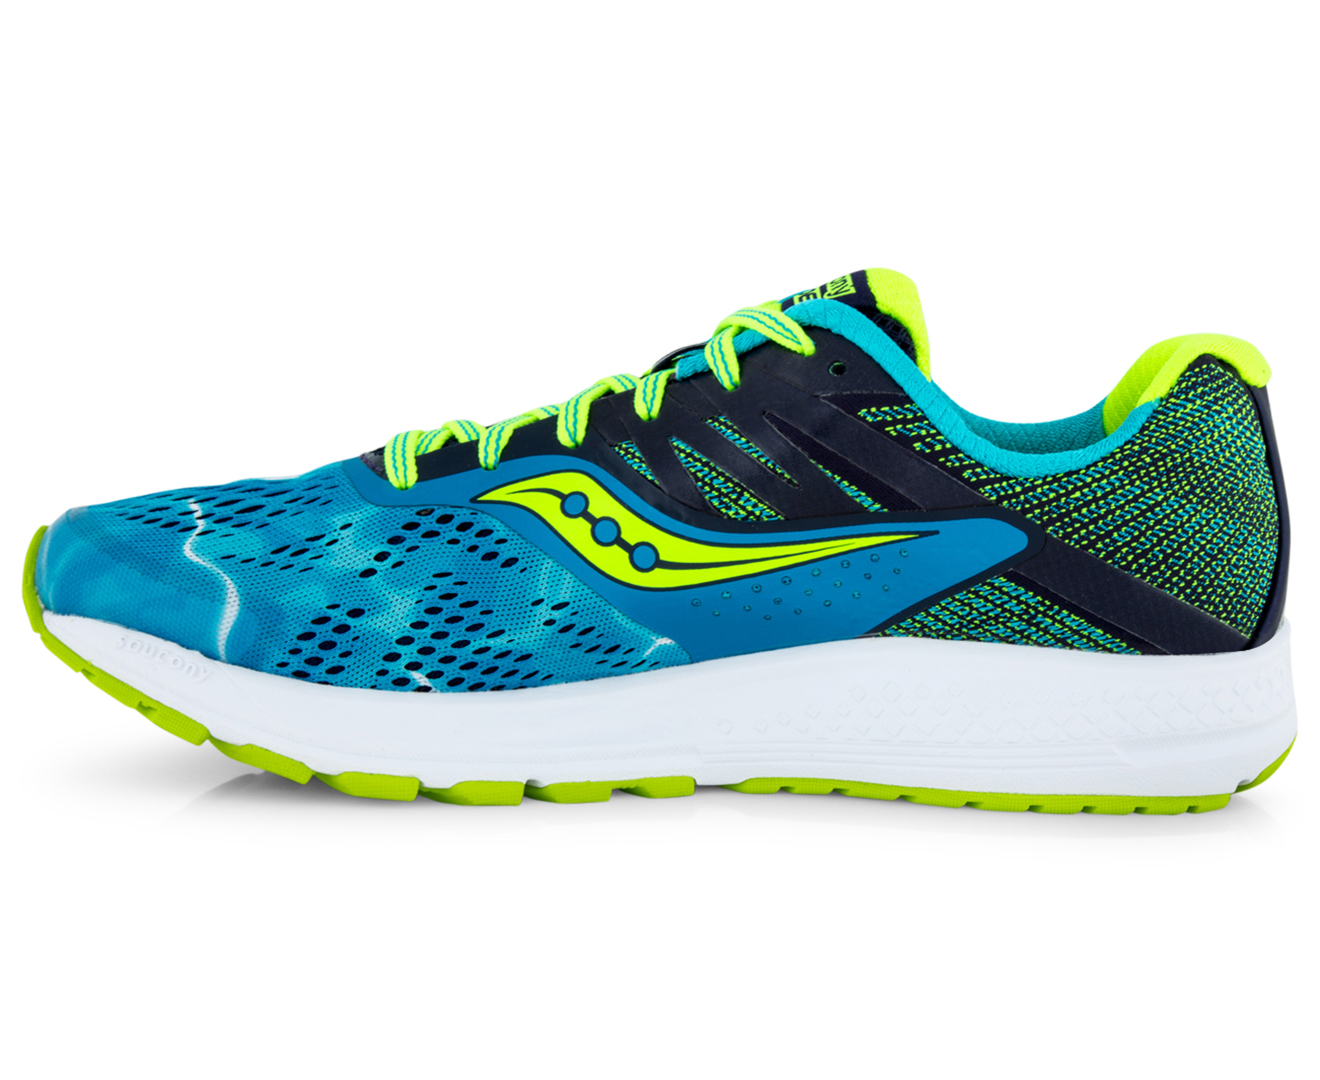 Saucony Running Shoes Ratings